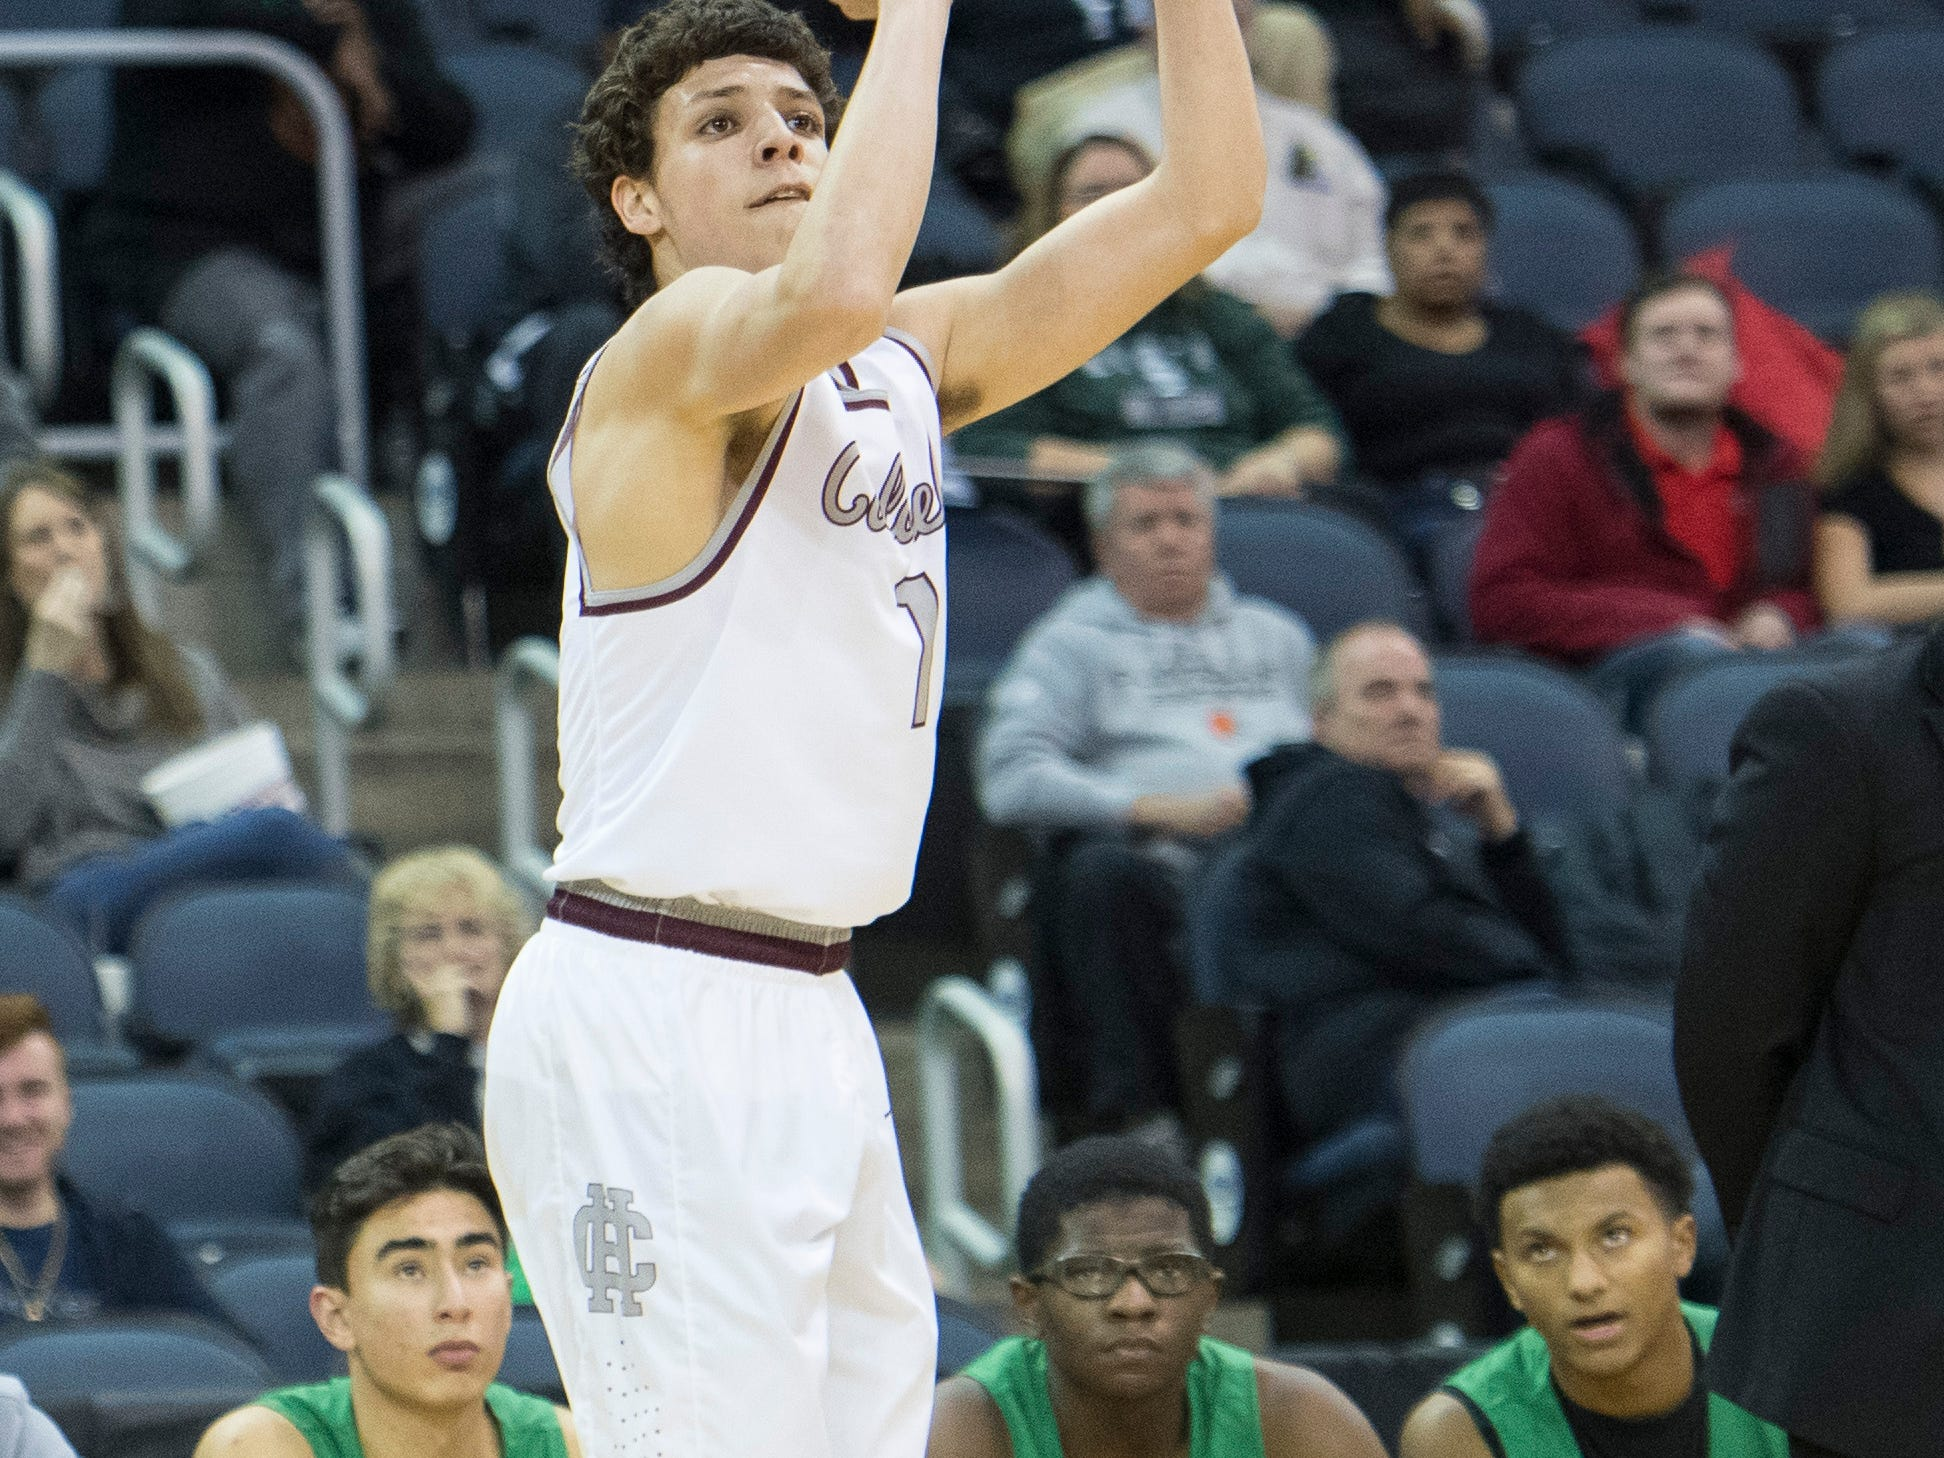 Henderson's Corey Stewart (1) takes a shot from the 3-point line during the Henderson County vs Evansville North basketball game in the River City Showcase at the Ford Center Friday, Dec. 7, 2018.